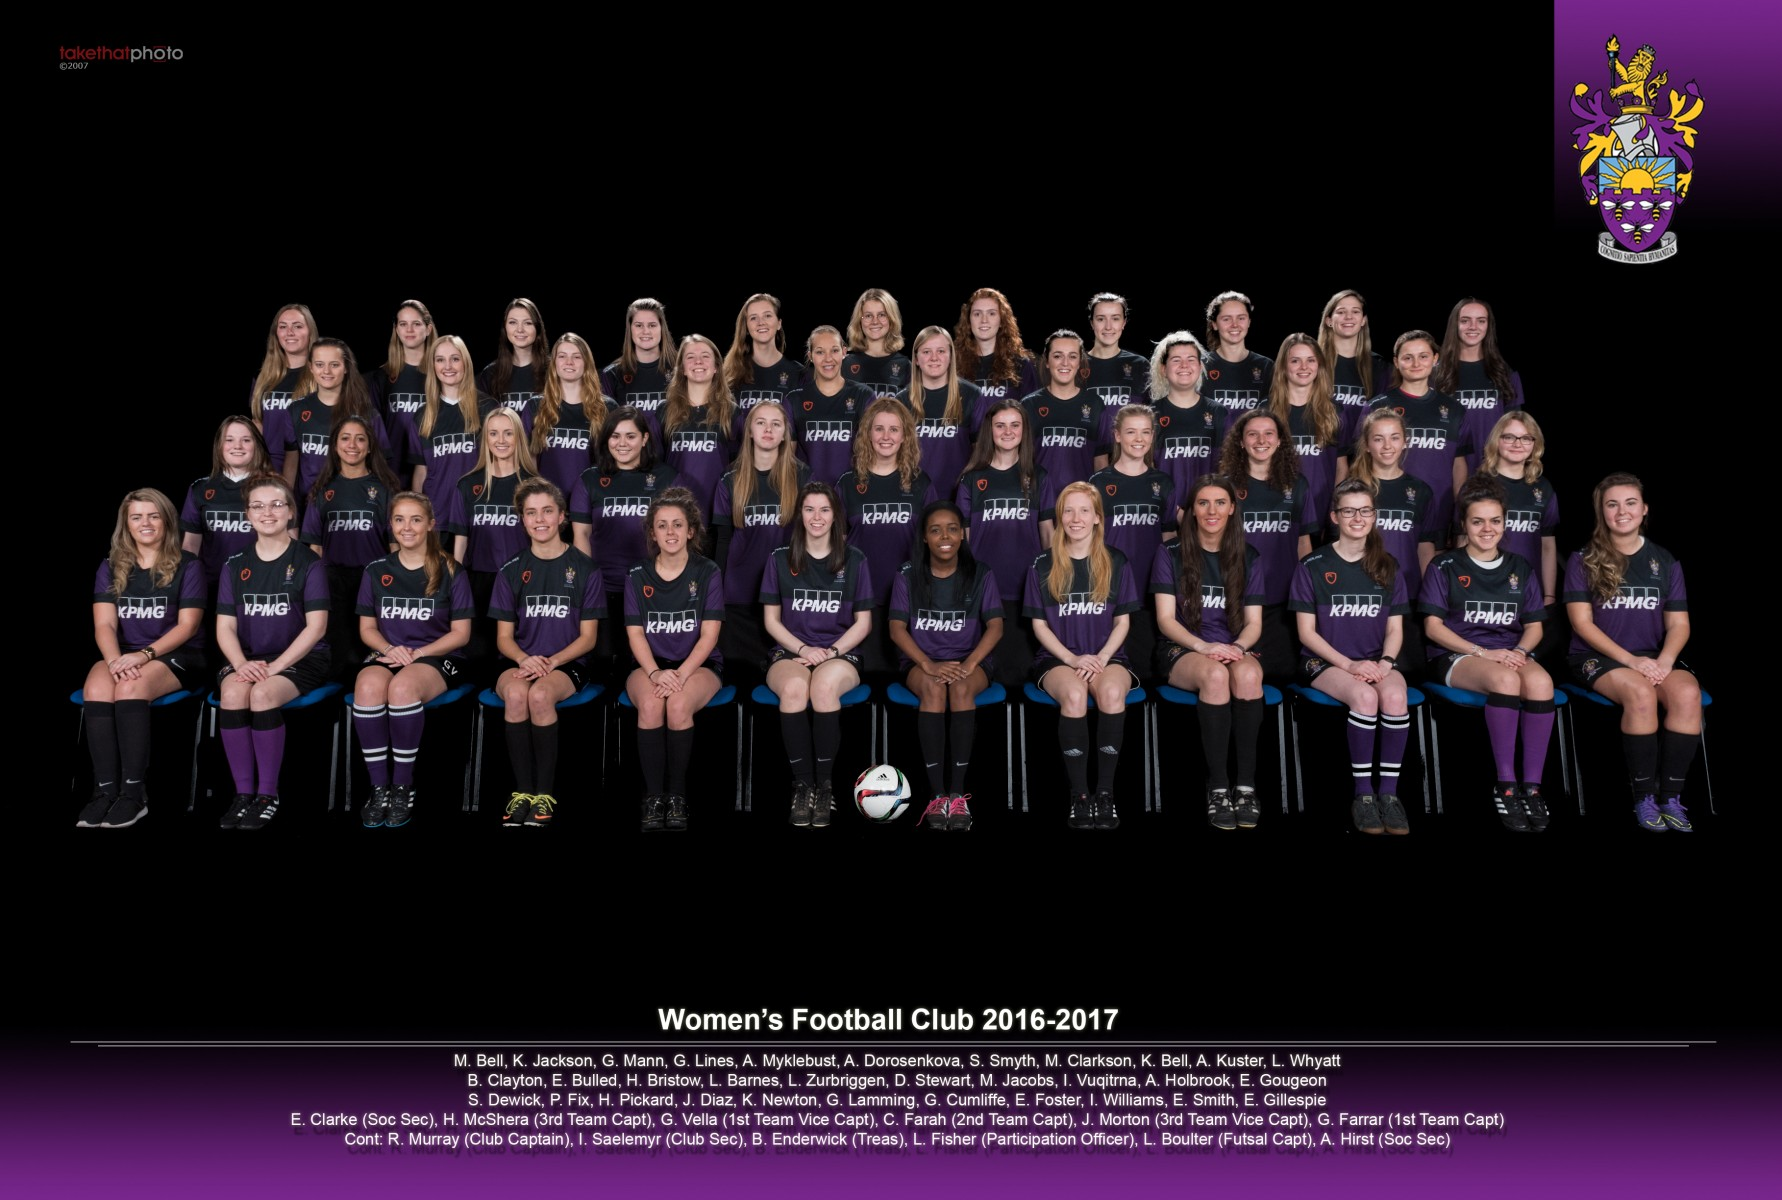 womens football club picture for james